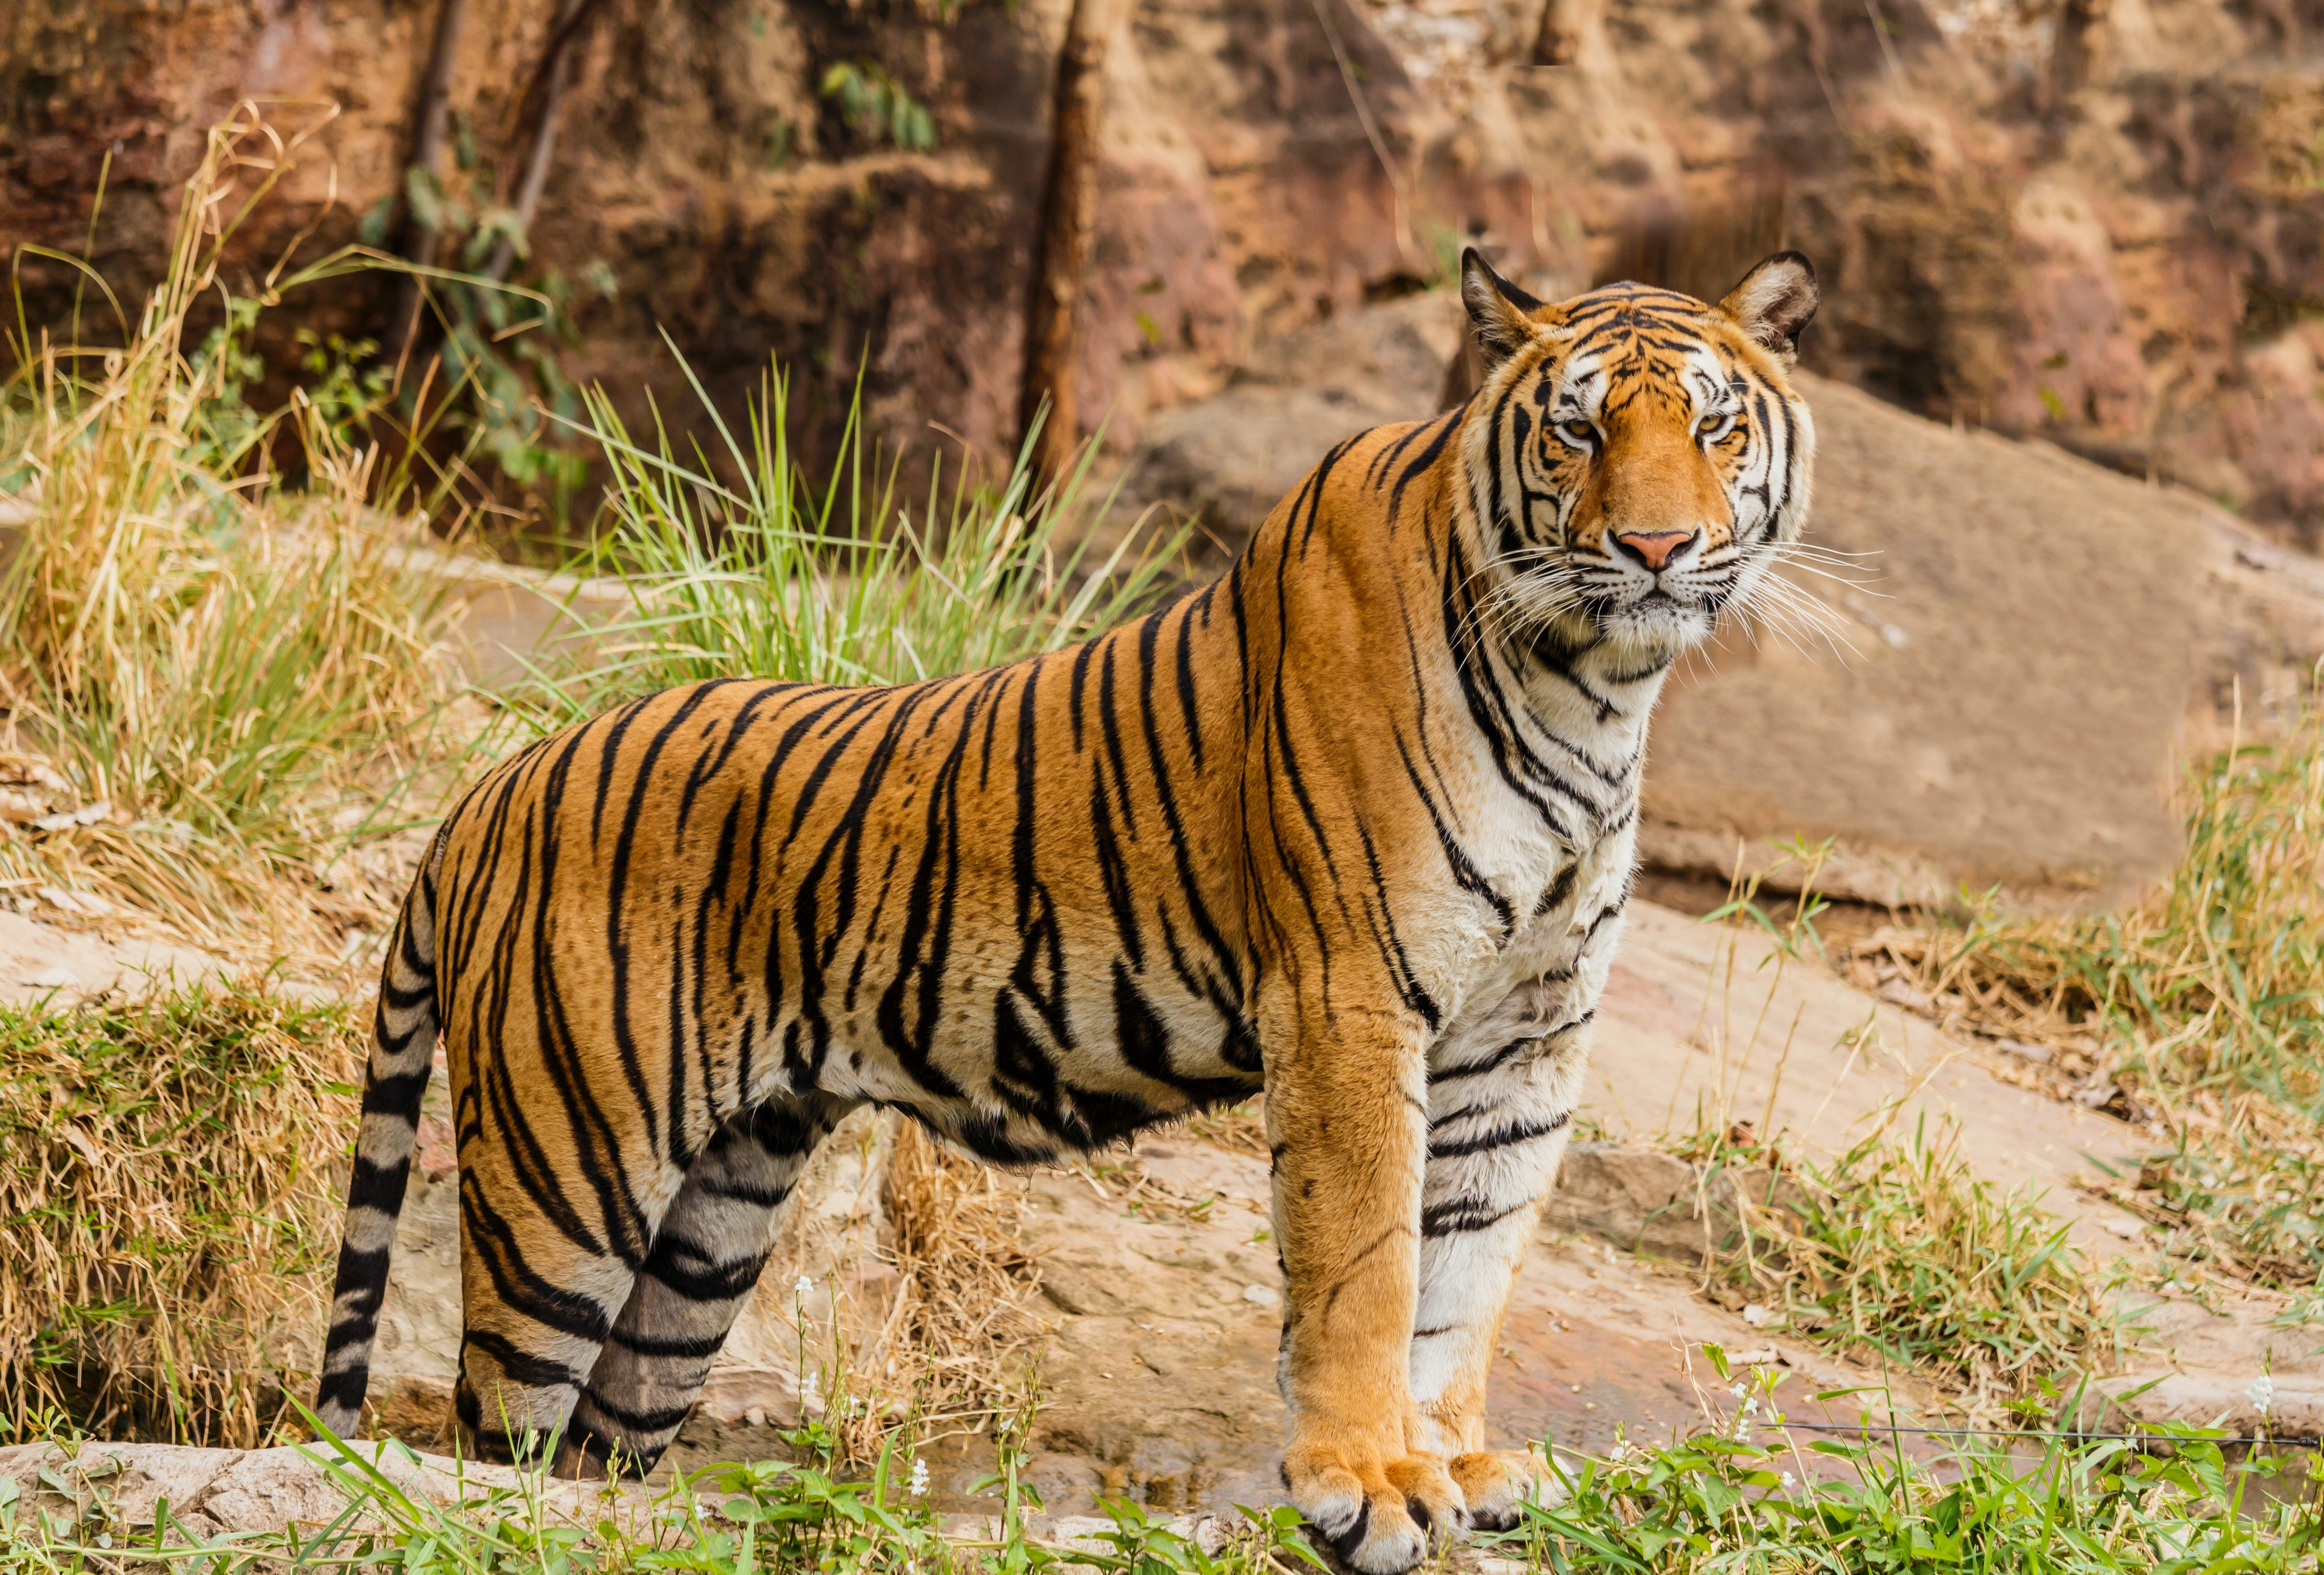 A Tiger stands on a rock